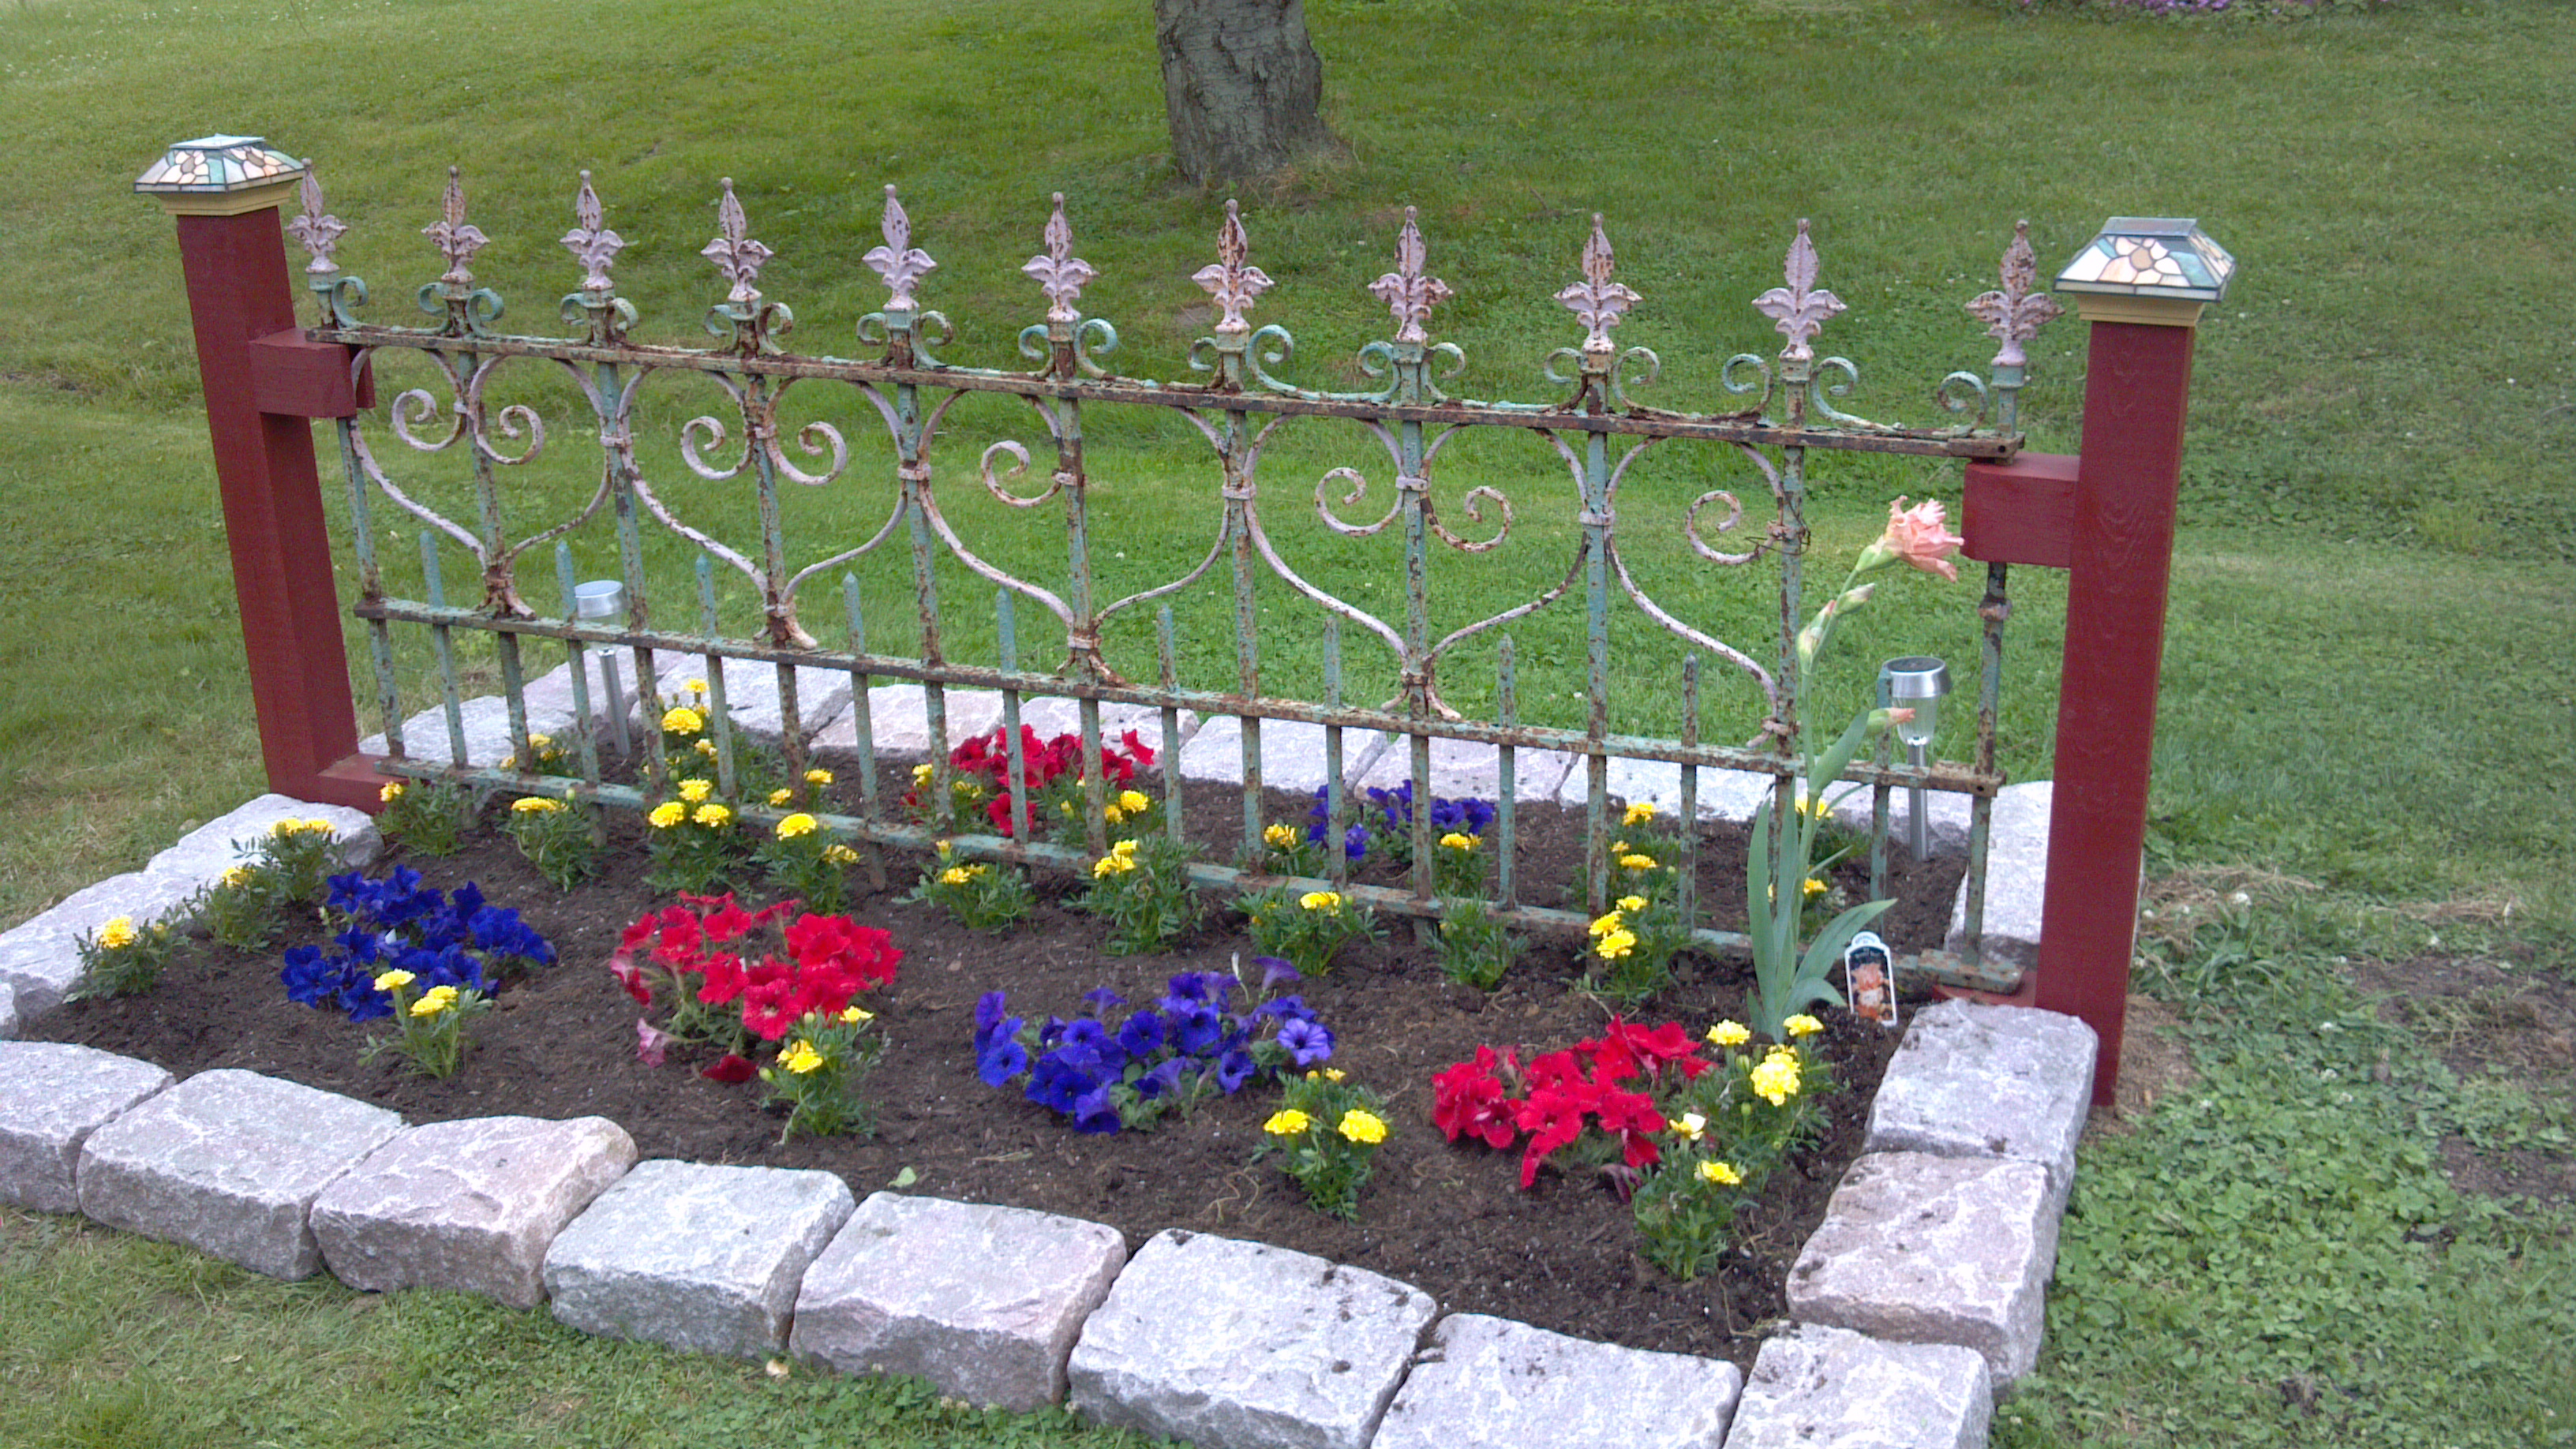 She And Her Husband Mounted The Gate To 2 Posts And Surrounded The Garden  Plot With Nice Blocks To Trim Out ...